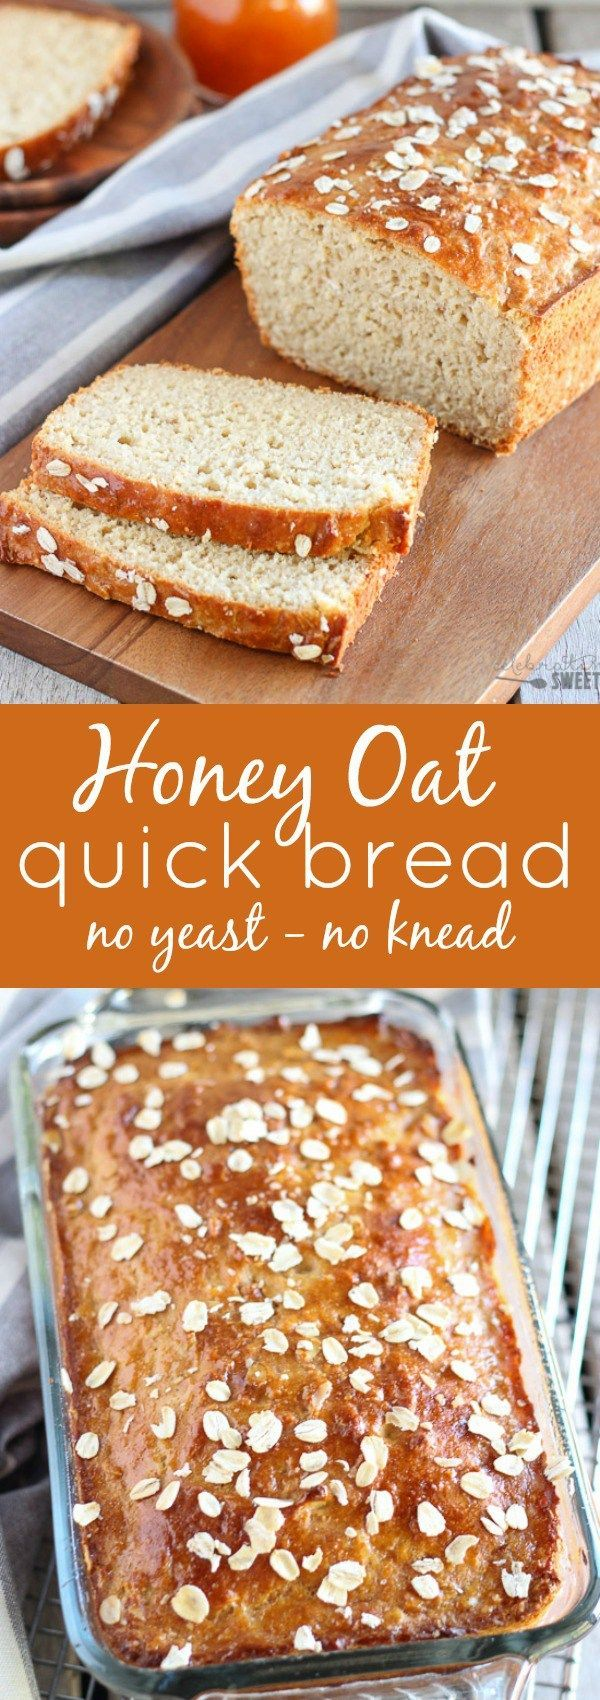 17 Best ideas about No Yeast Bread on Pinterest